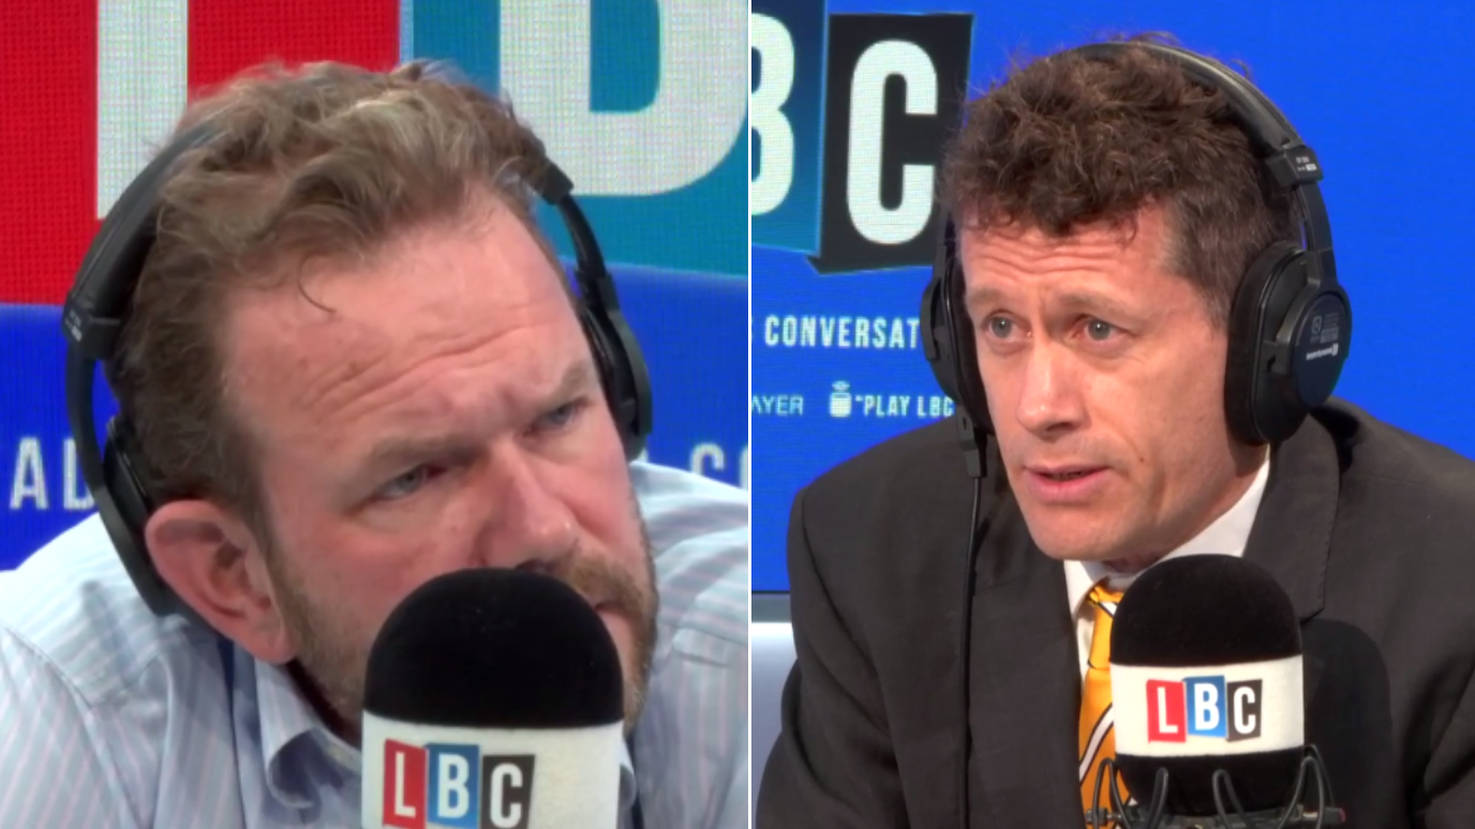 UK Would Be Only Country To Trade Exclusively On WTO Terms, Expert Tells James O'Brien